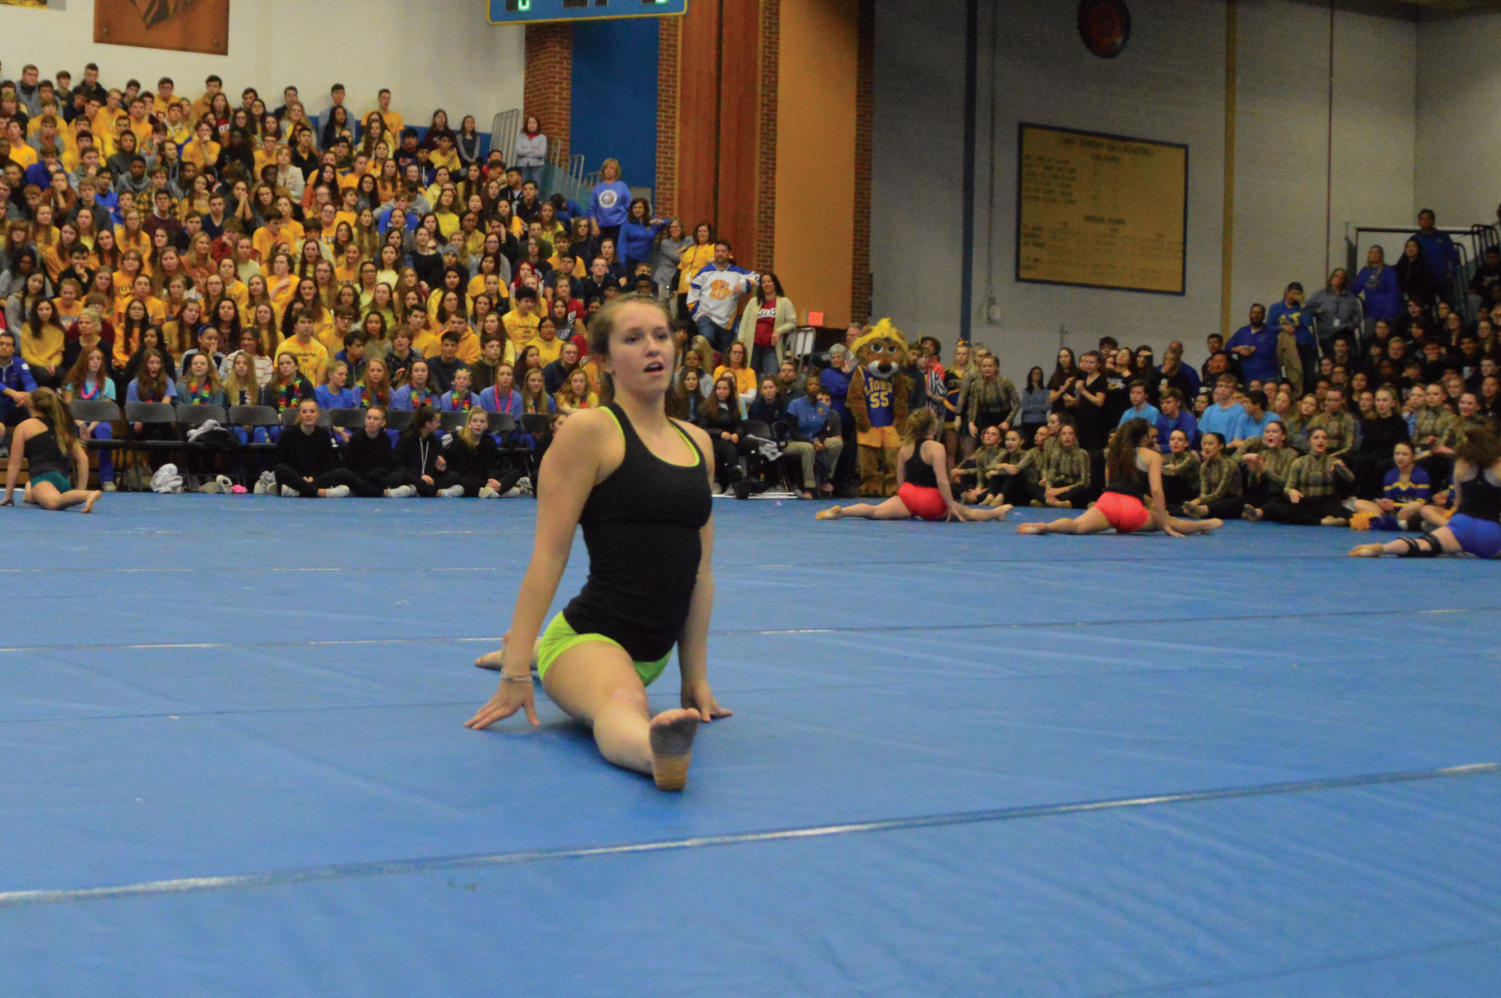 LT+student+does+the+splits+during+the+18th+annual+All-school+Assembly.